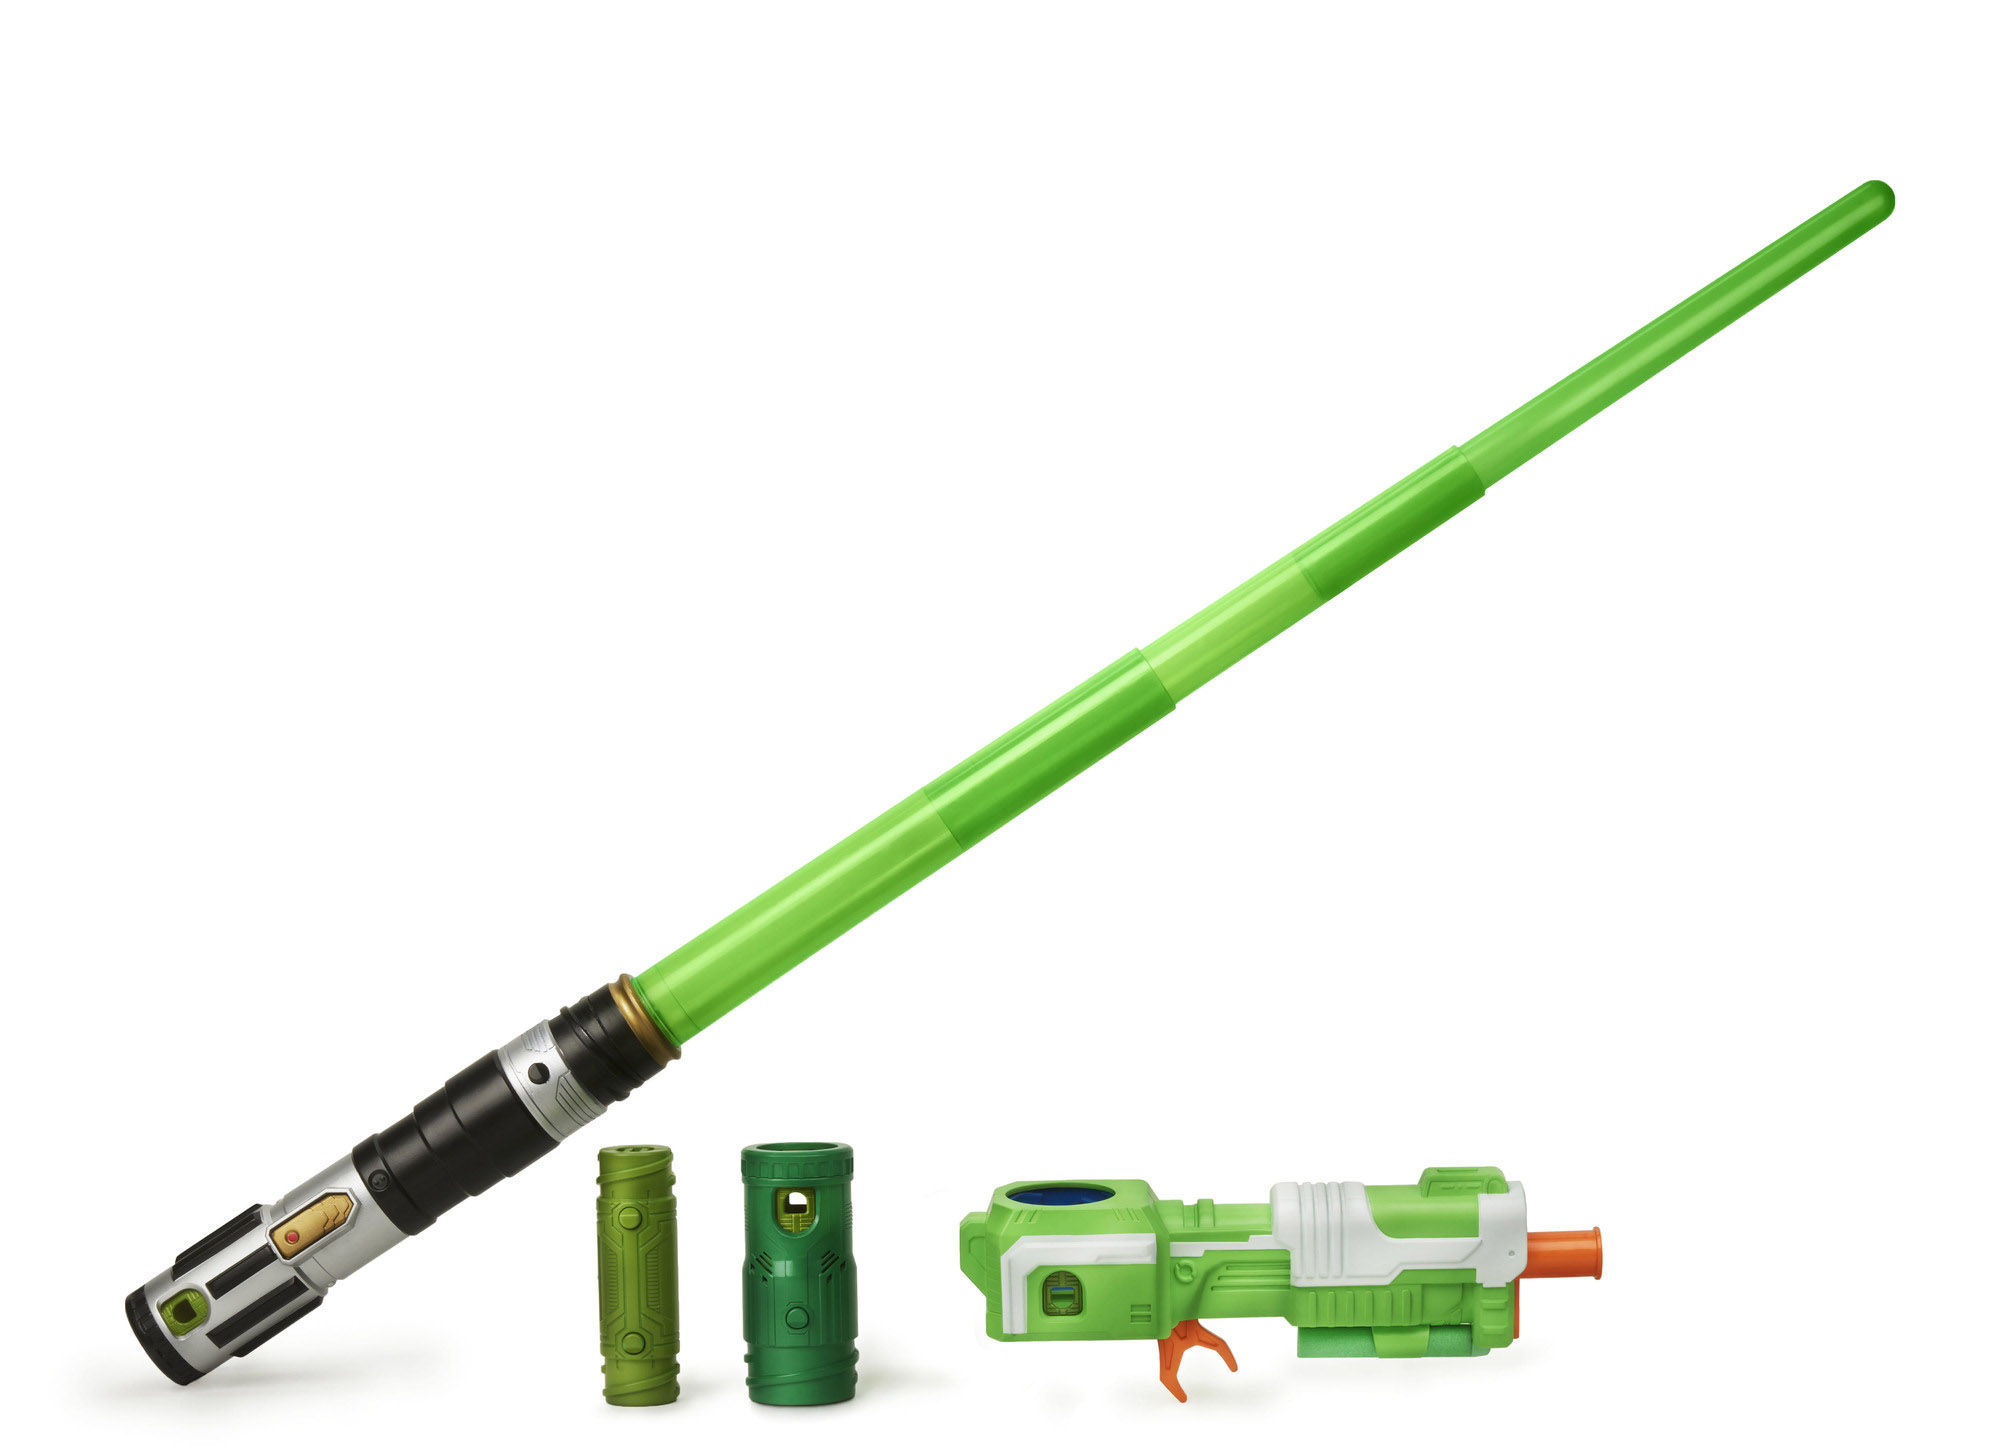 New Star Wars Rebels Black Series and Lightsaber Toys